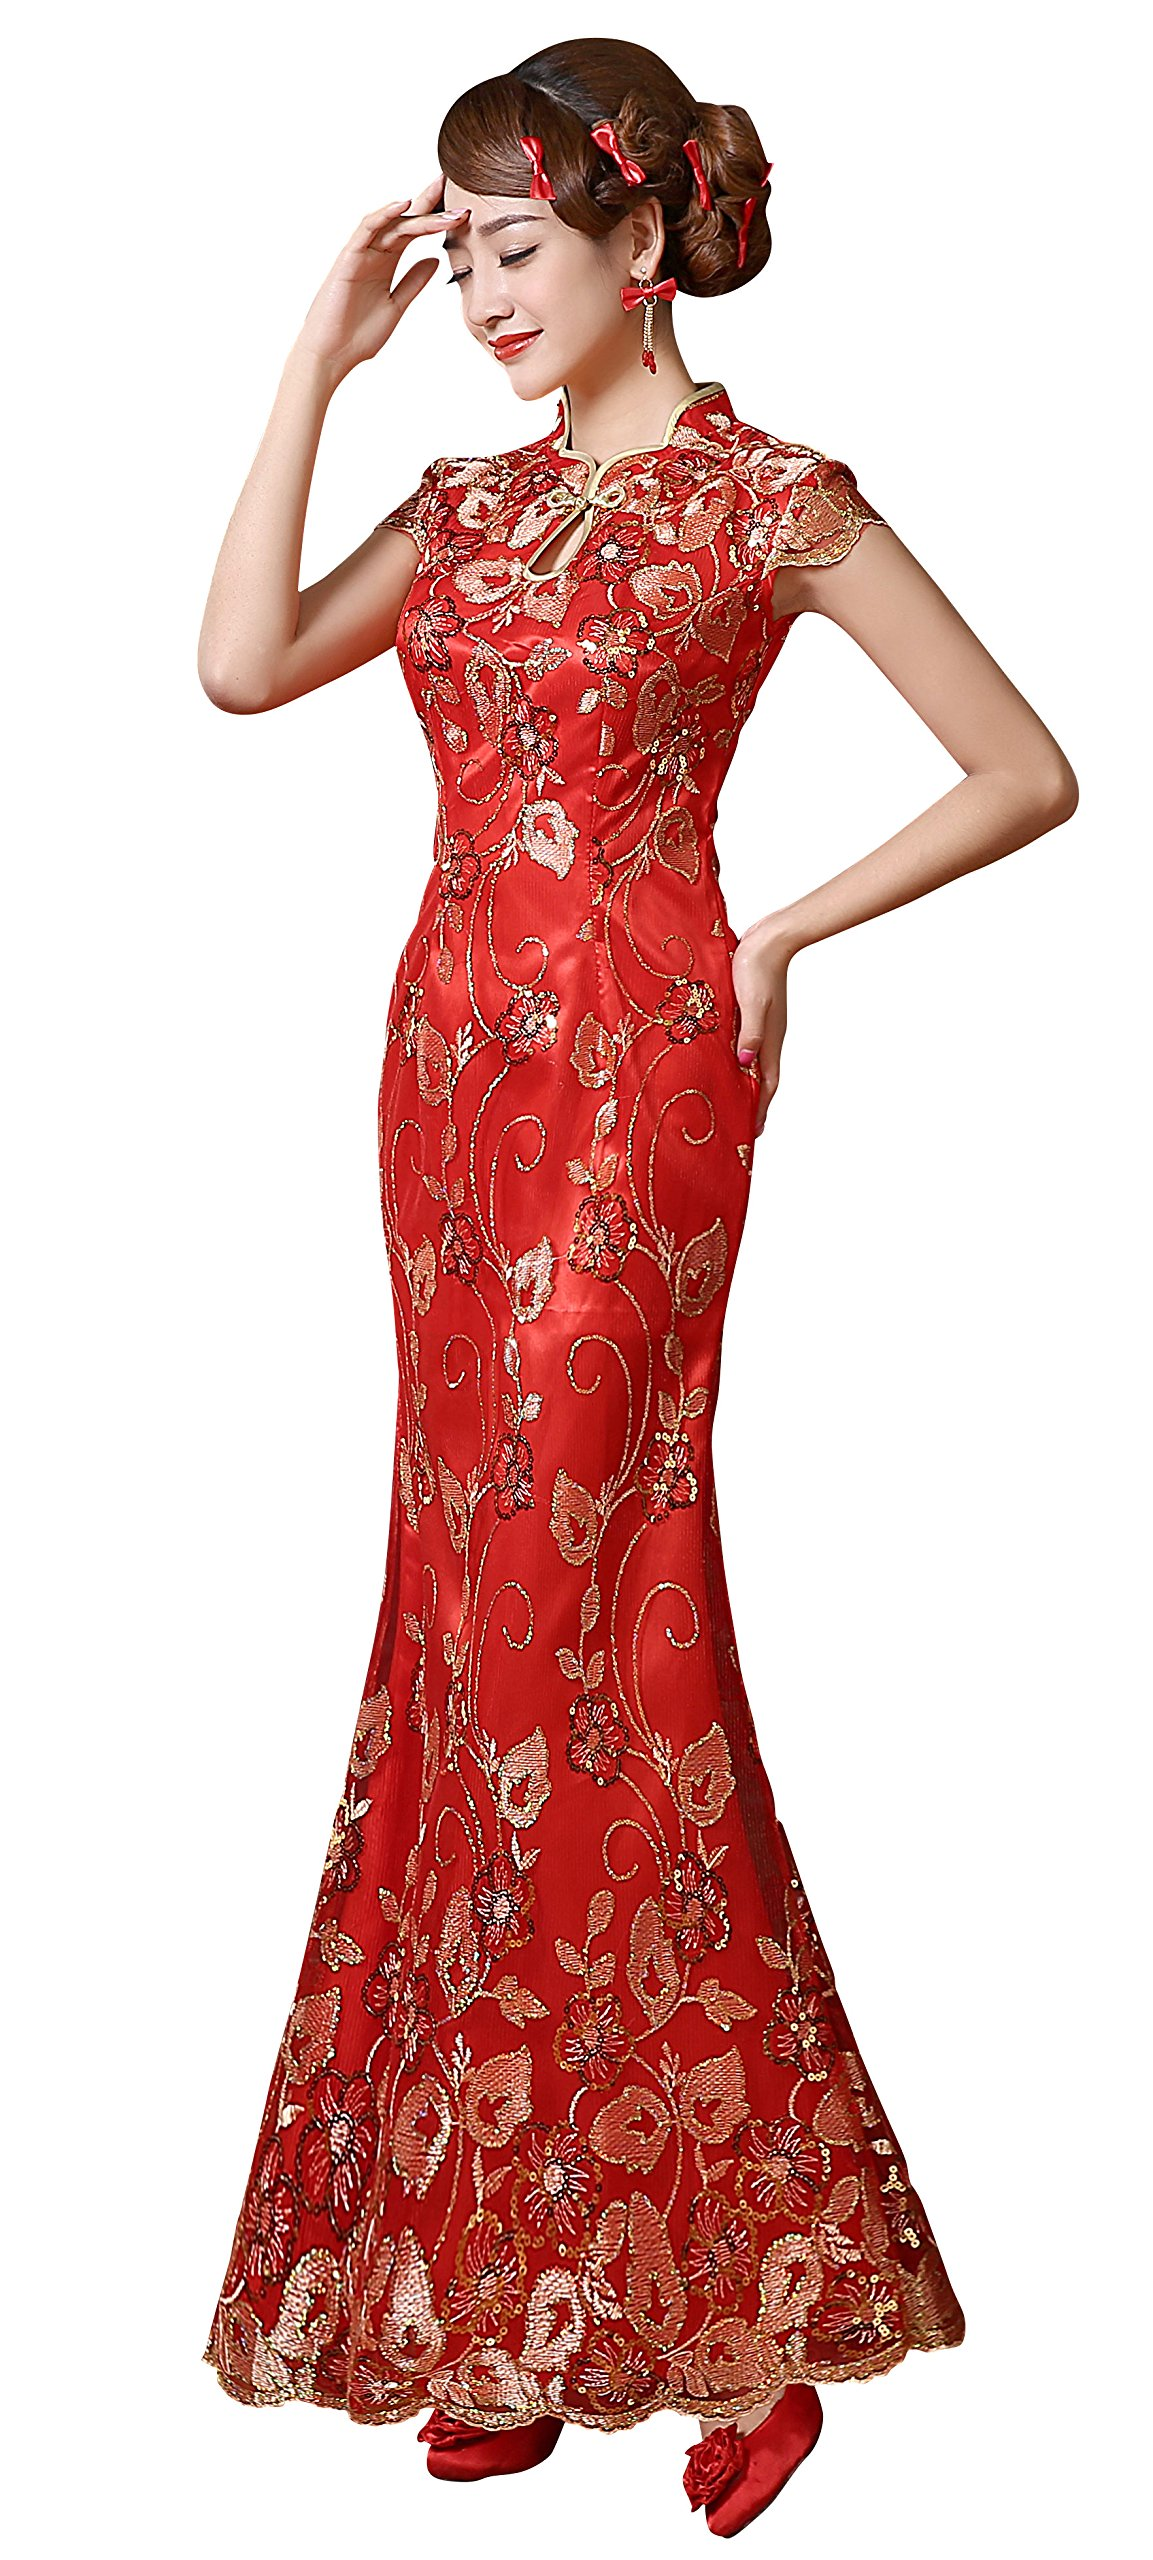 Clover Bridal Vintage Sexy High Collar Long Lace Cheongsam Qipao Dress Red (6)